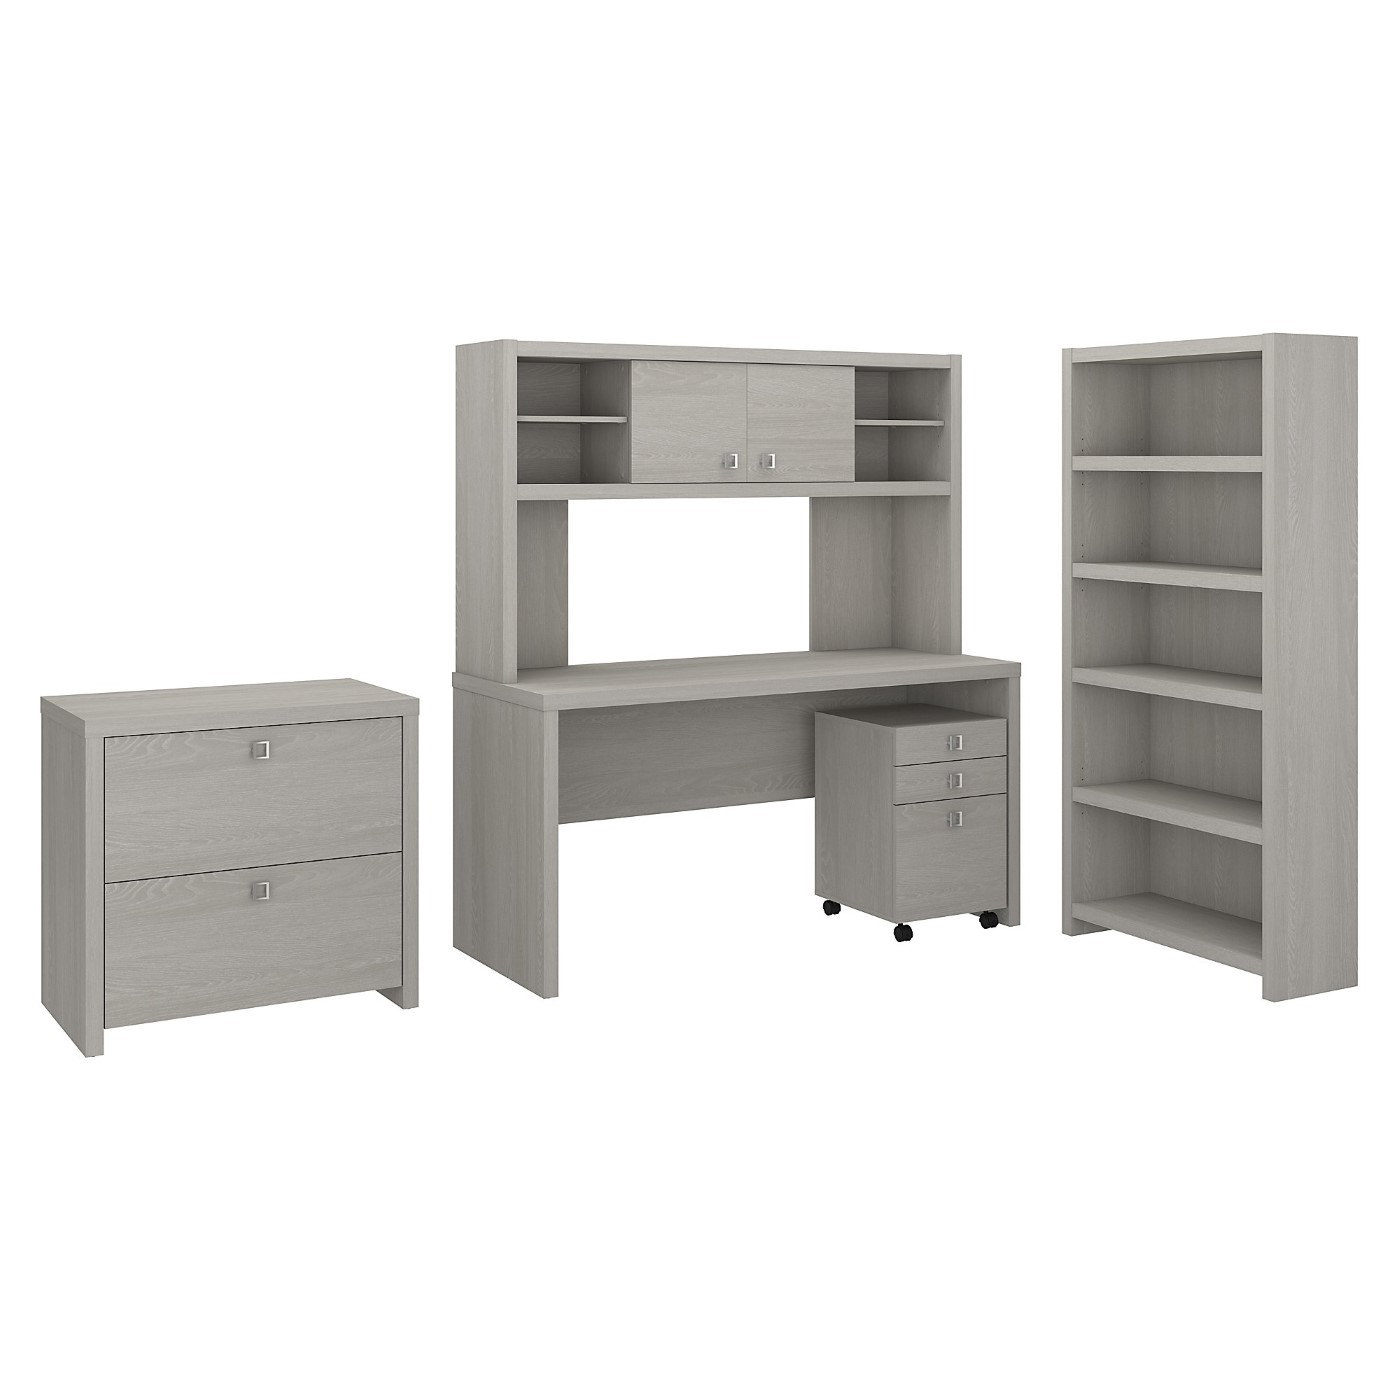 </b></font><b>The kathy ireland� Echo Desk with Hutch, Bookcase and File Cabinets is Sustainable Eco Friendly Furniture. Includes Free Shipping! 30H x 72L x 72W</b></font>  VIDEO BELOW. <p>RATING:&#11088;&#11088;&#11088;&#11088;&#11088;</b></font></b>